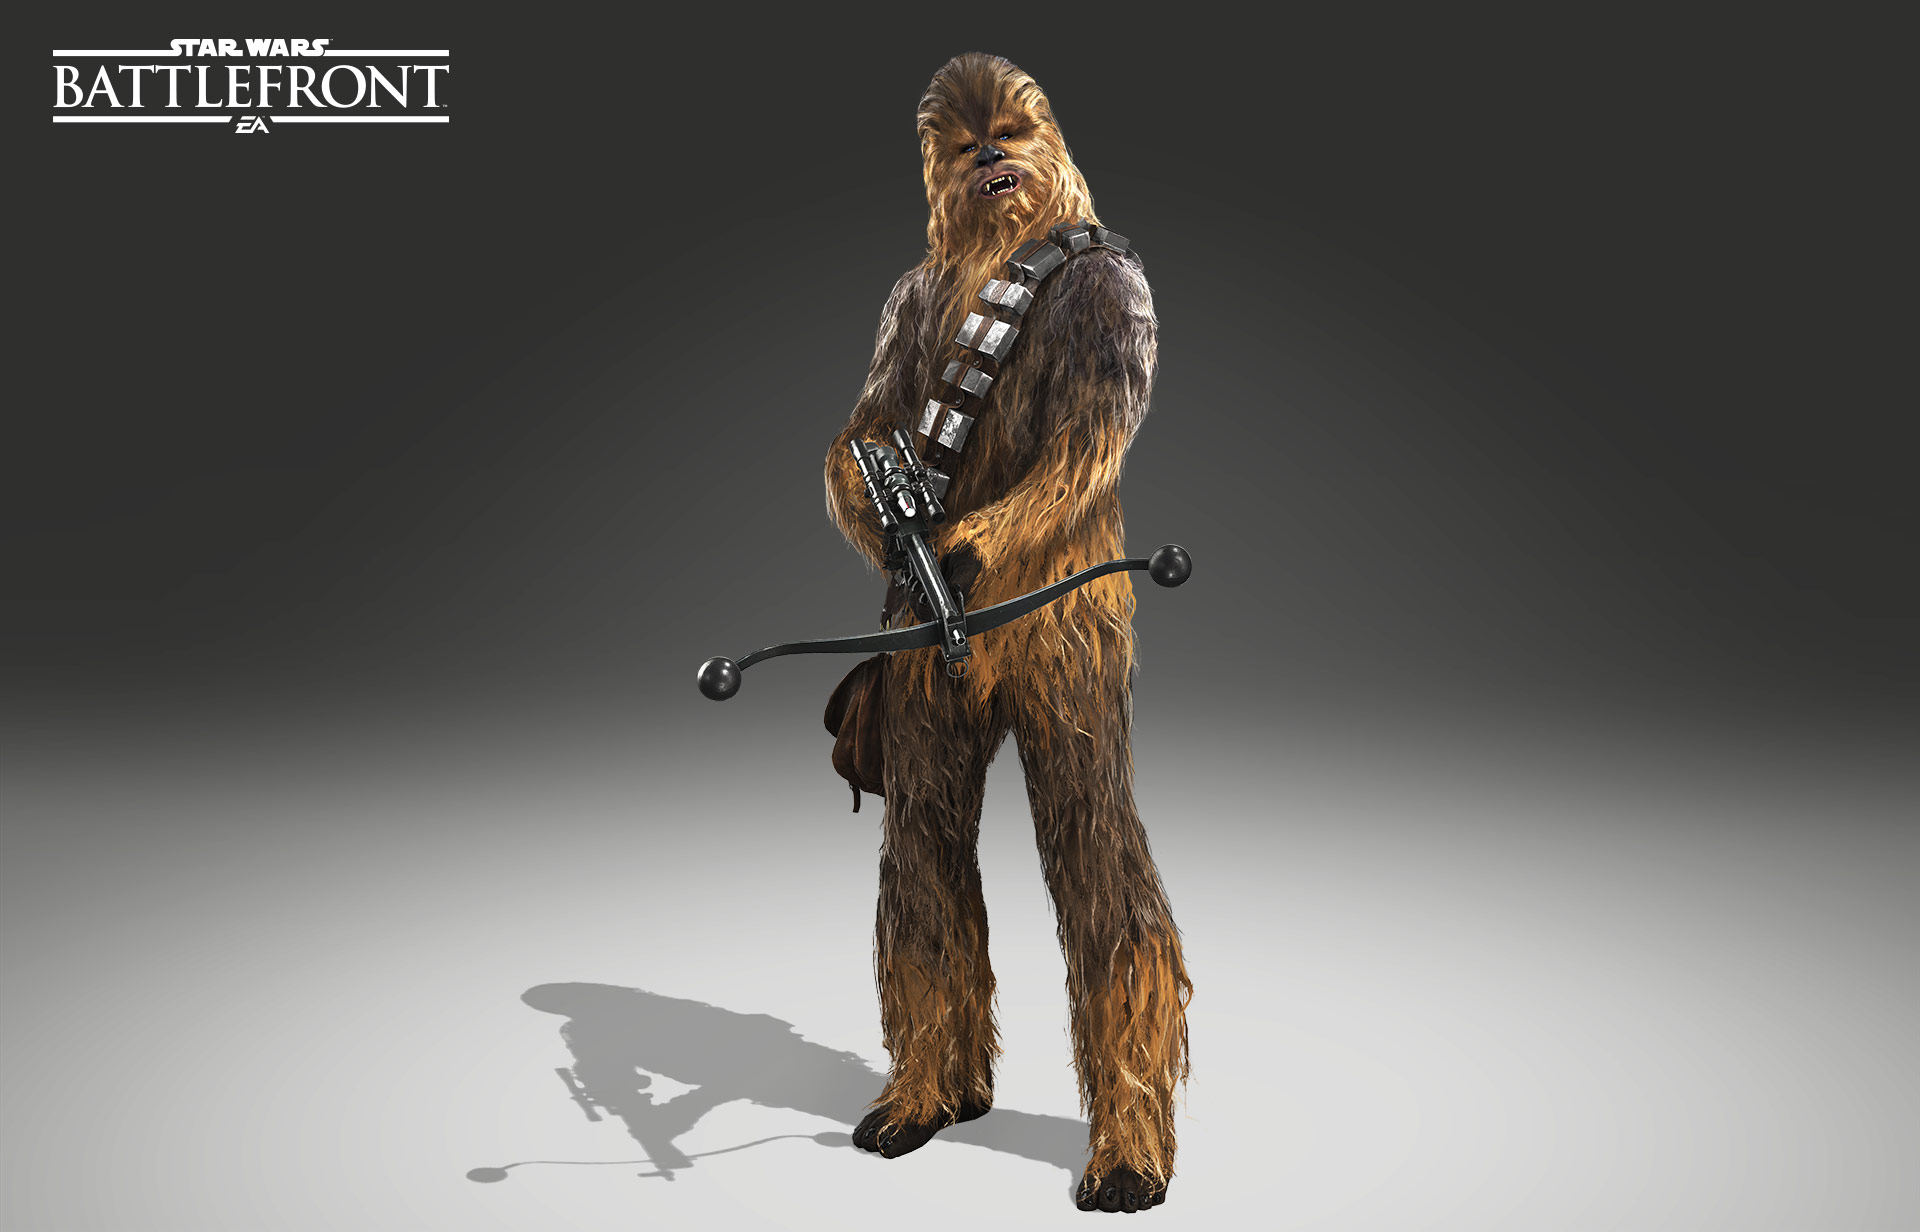 Things to Know About the Star Wars Battlefront Death Star DLC